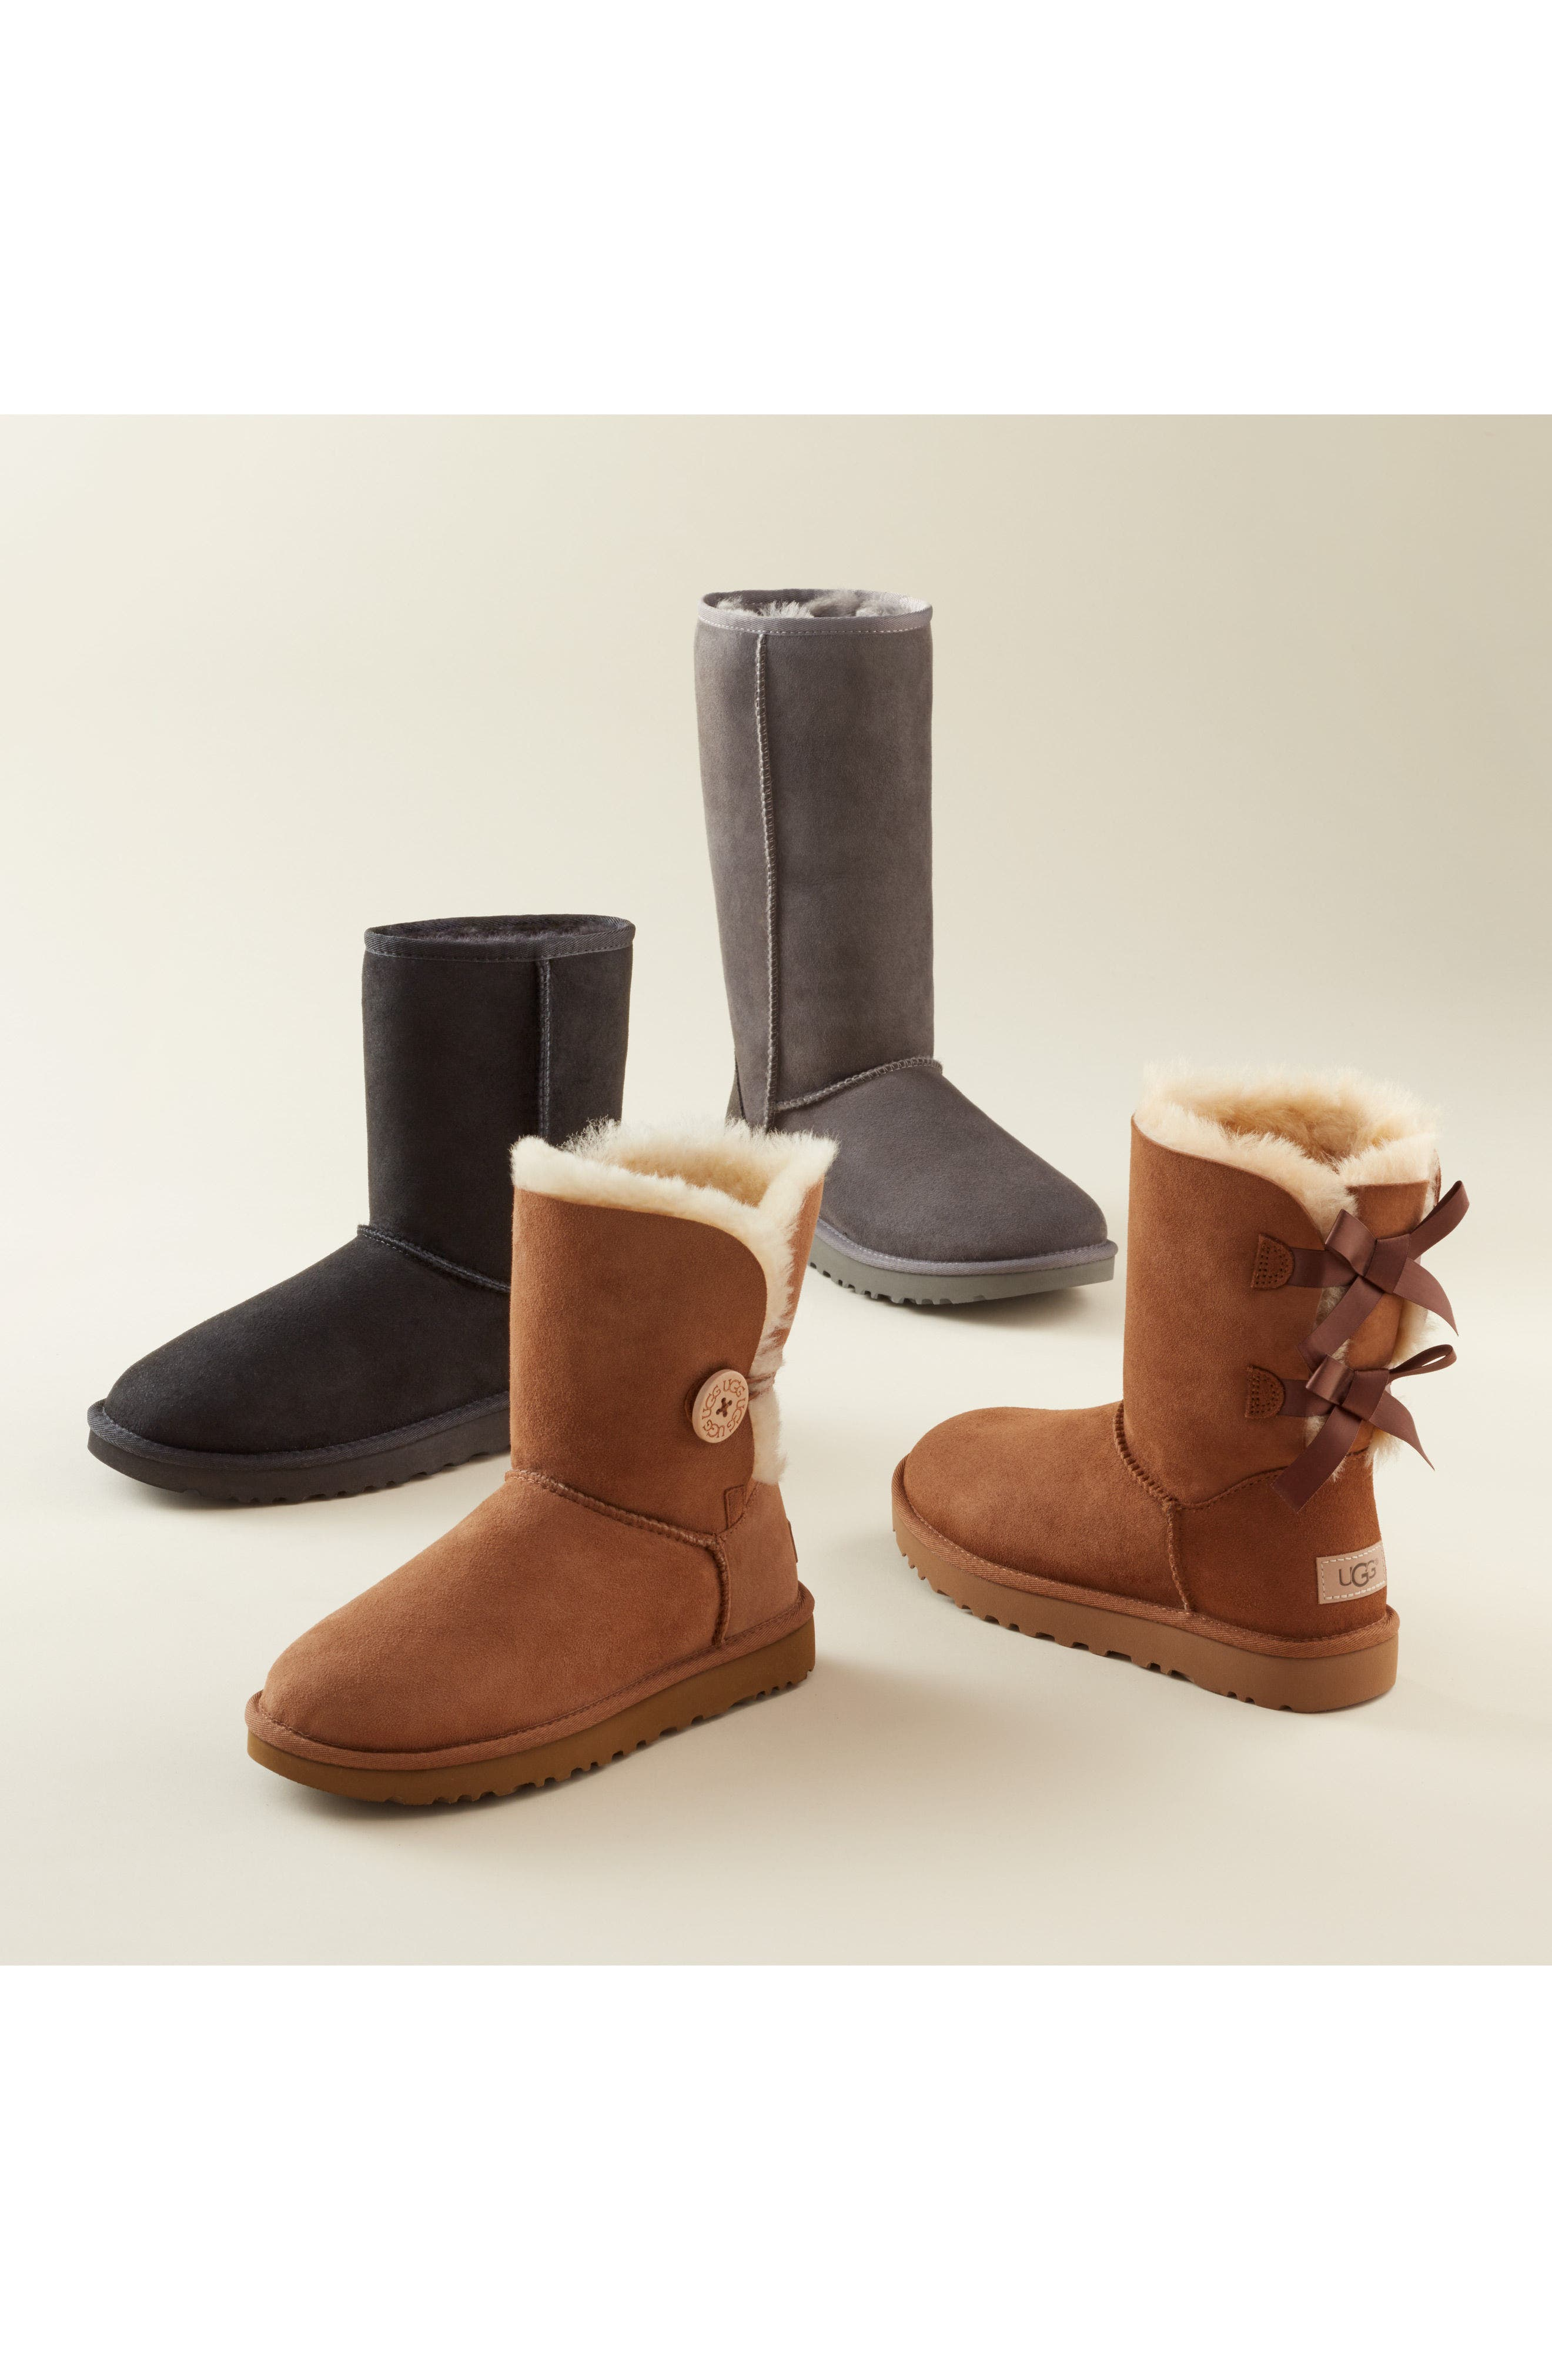 'Classic II' Genuine Shearling Lined Short Boot,                             Alternate thumbnail 10, color,                             CHESTNUT SUEDE